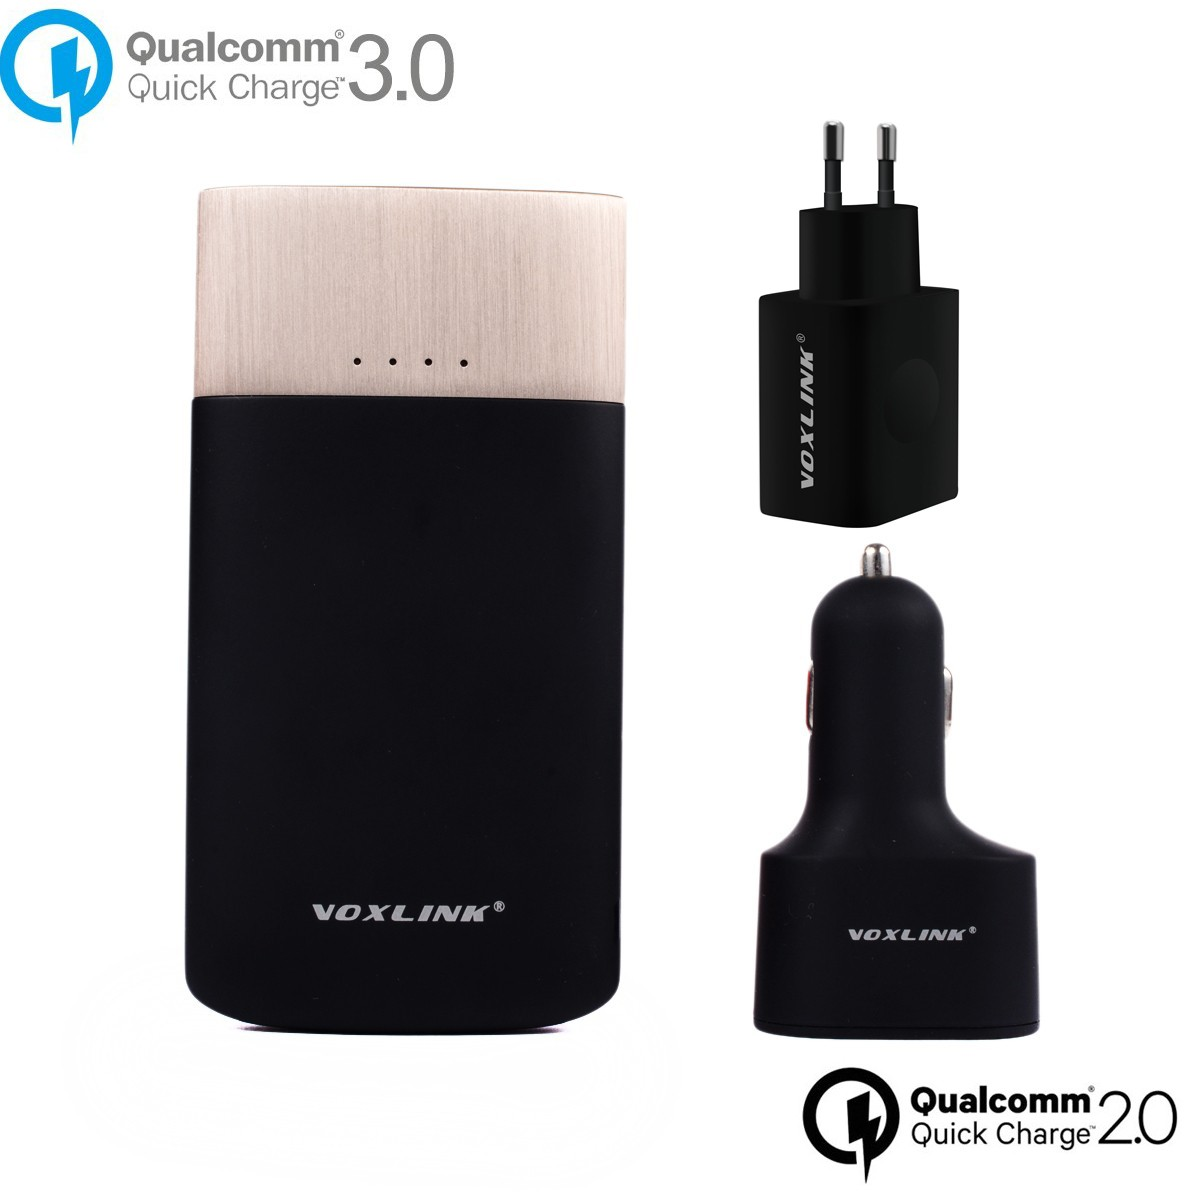 Qualcomm VOXLINK Quick Charge 3.0 USB Wall Charger With Quick Charge 2.0 Power Bank 9000mah Powerbank +Car Charger Adapter